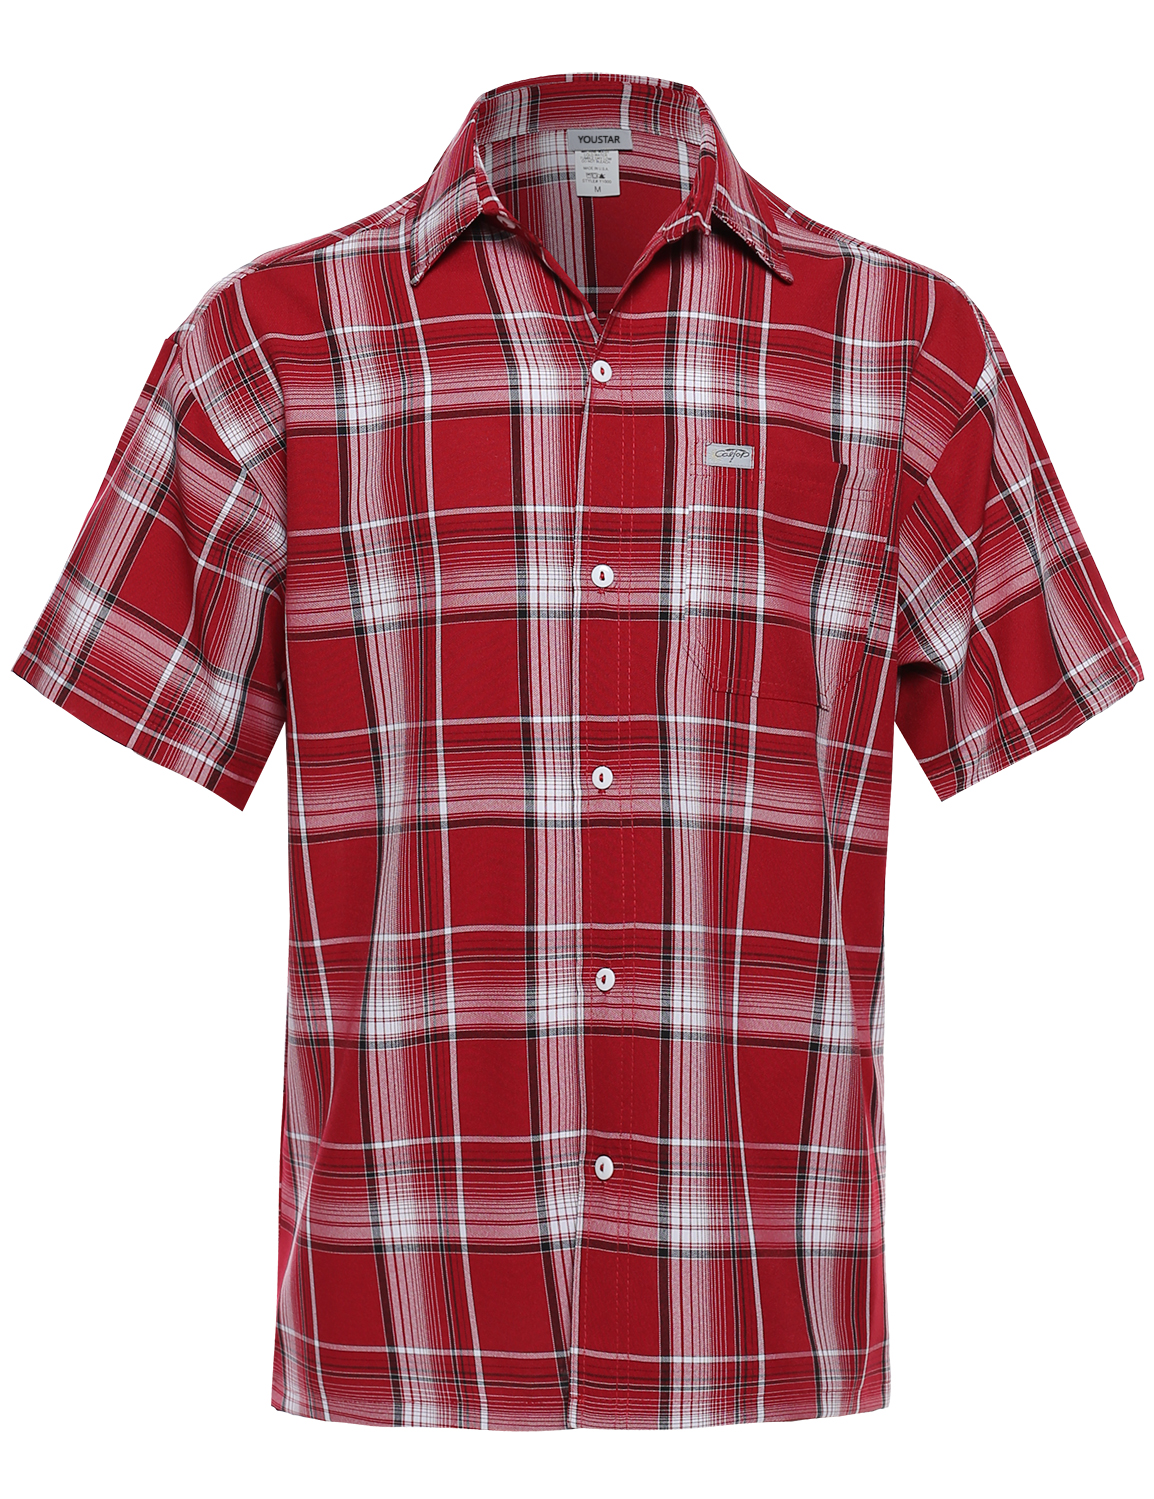 Fashionoutfit men 39 s loose fit plaid checkered short sleeve for Mens short sleeve button down shirts